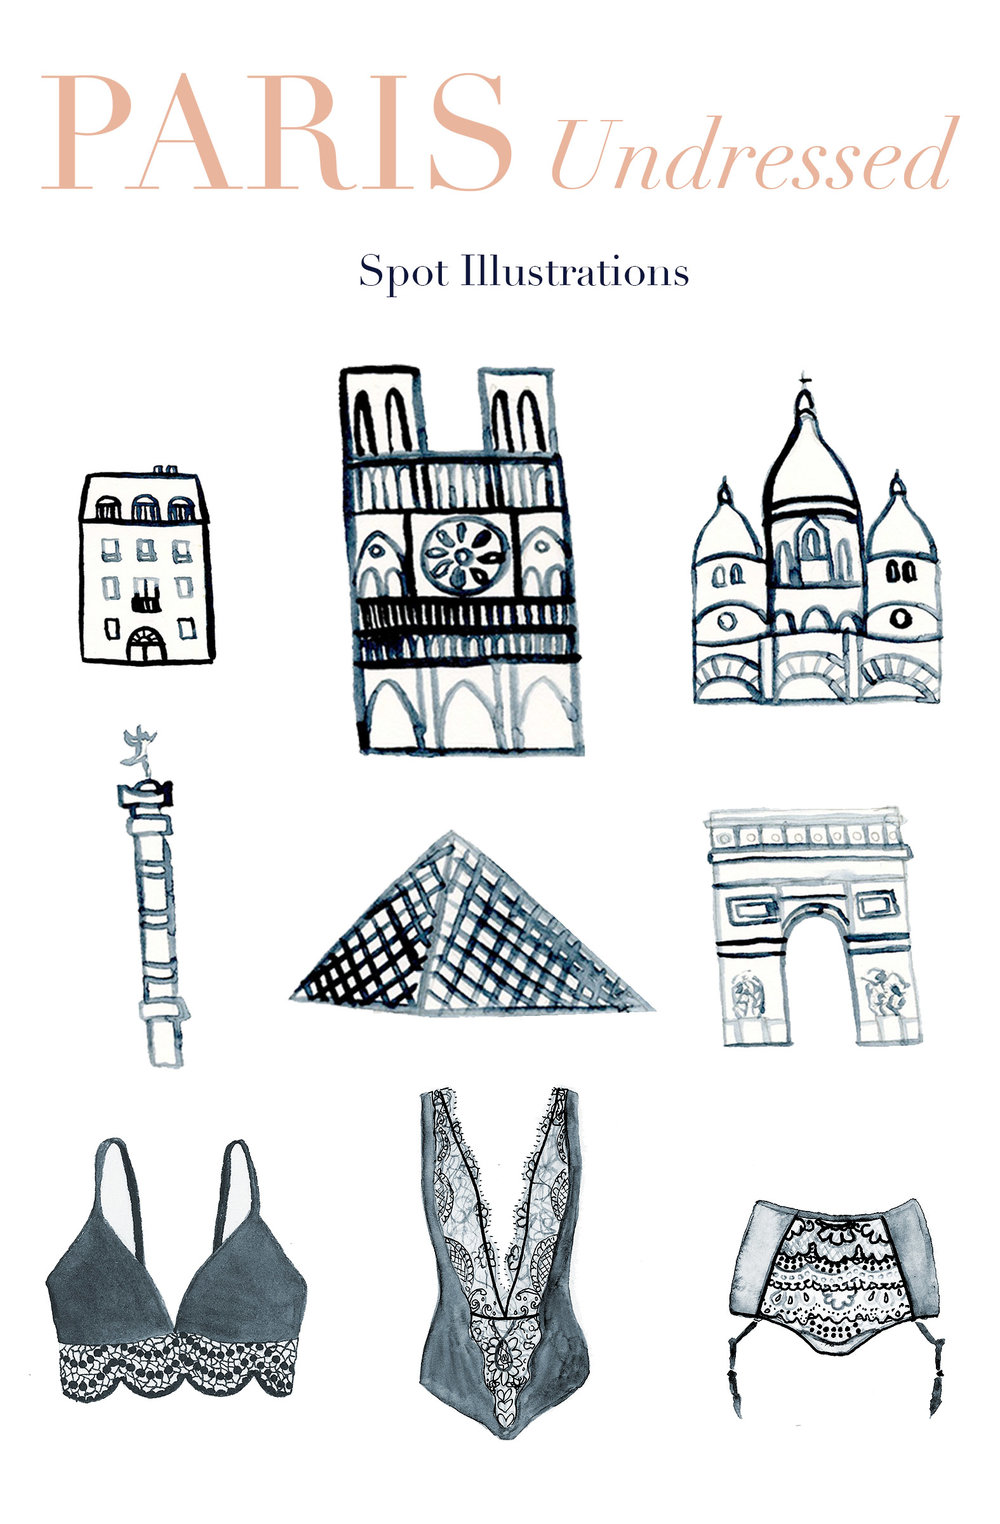 Paris Undresed Spot Illustrations Elle Powell.jpg